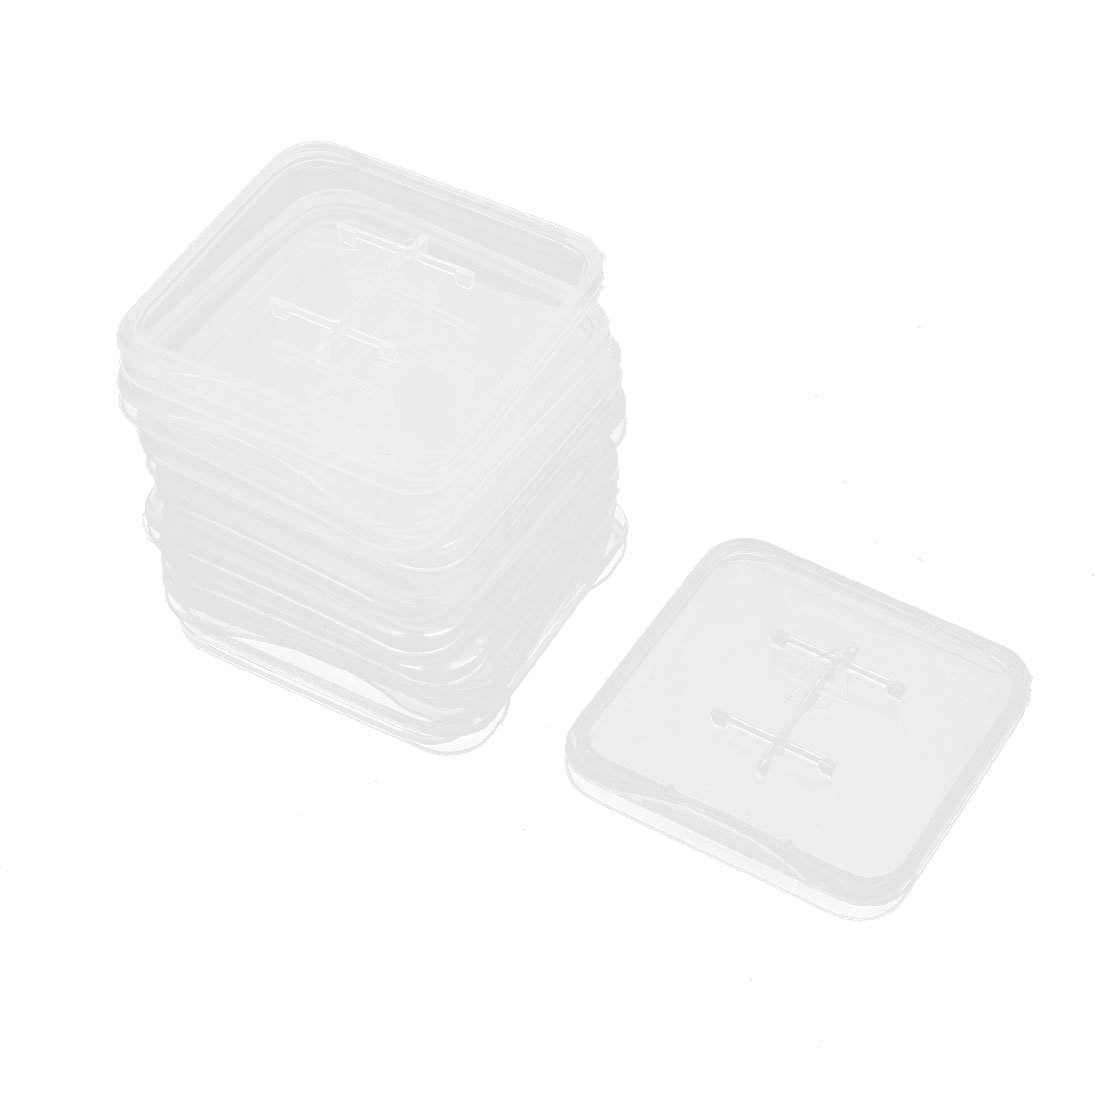 Cellphone Camera Memory TF SD SIM Card Clear White Plastic Storage Box Container 10pcs